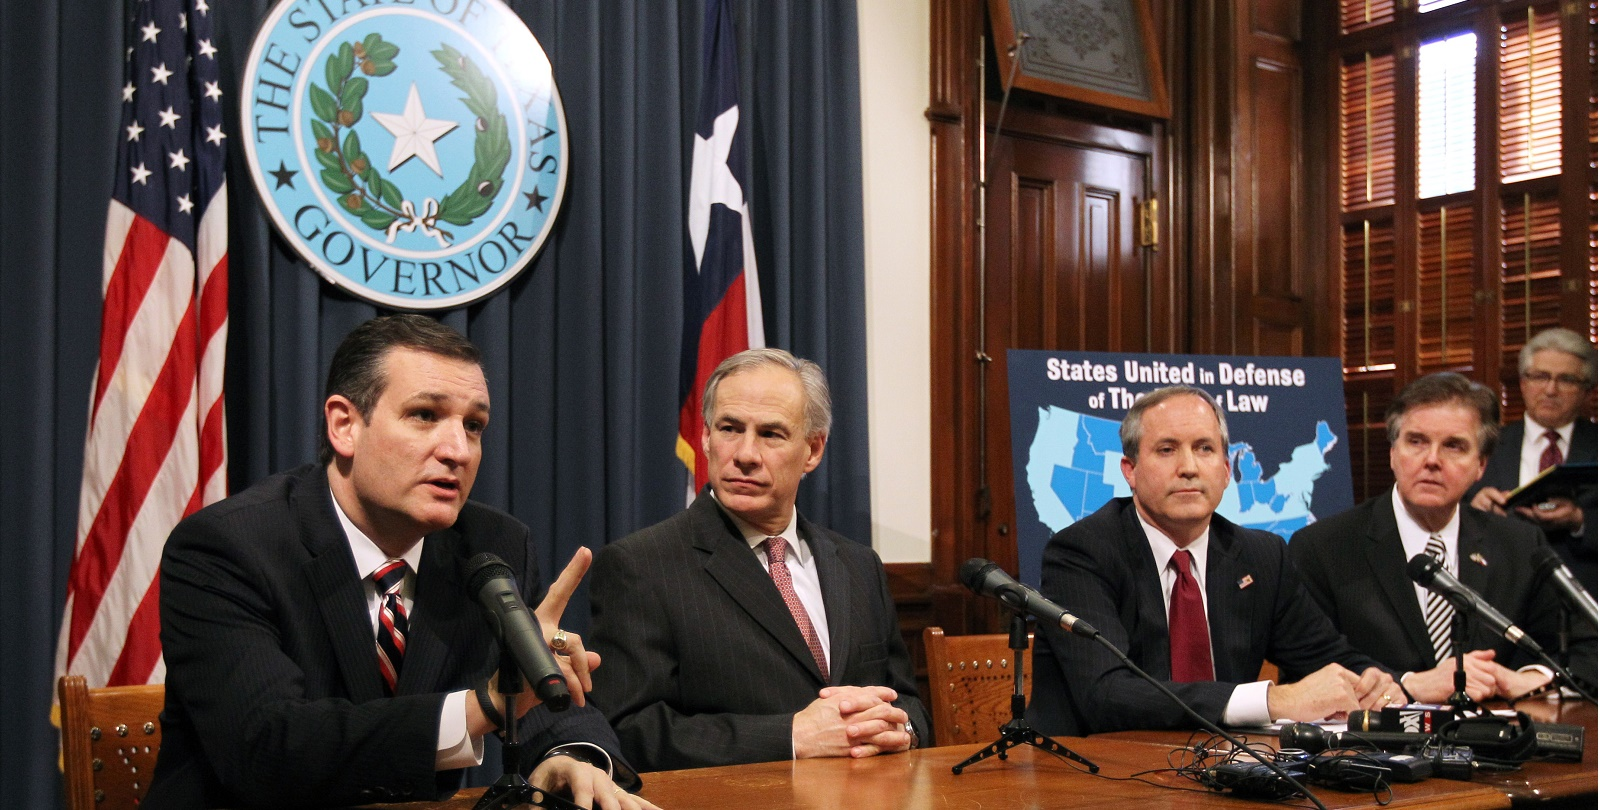 Ken Paxton, far right, with Senator Ted Cruz and lieutenant governor Dan Patrick